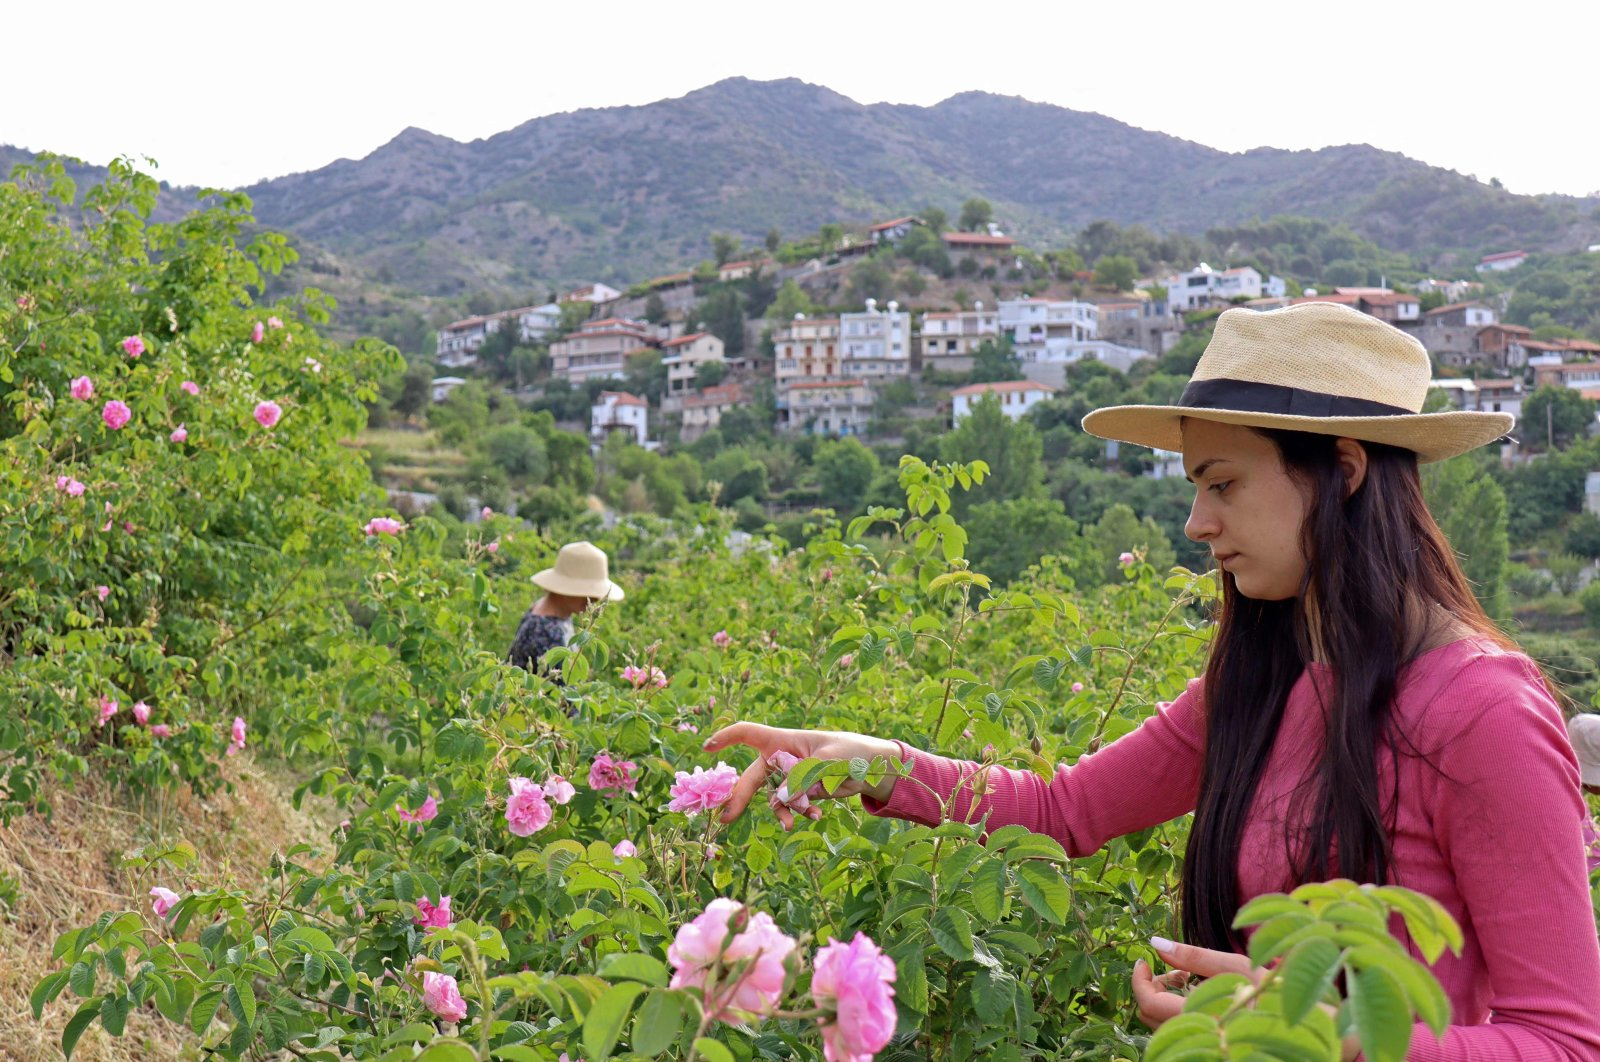 Elena Tsolakis harvests the Damask roses for oil extraction in the small mountain village of Agros standing of the Troodos mountain range, Cyprus, May 6, 2021. (AFP Photo)